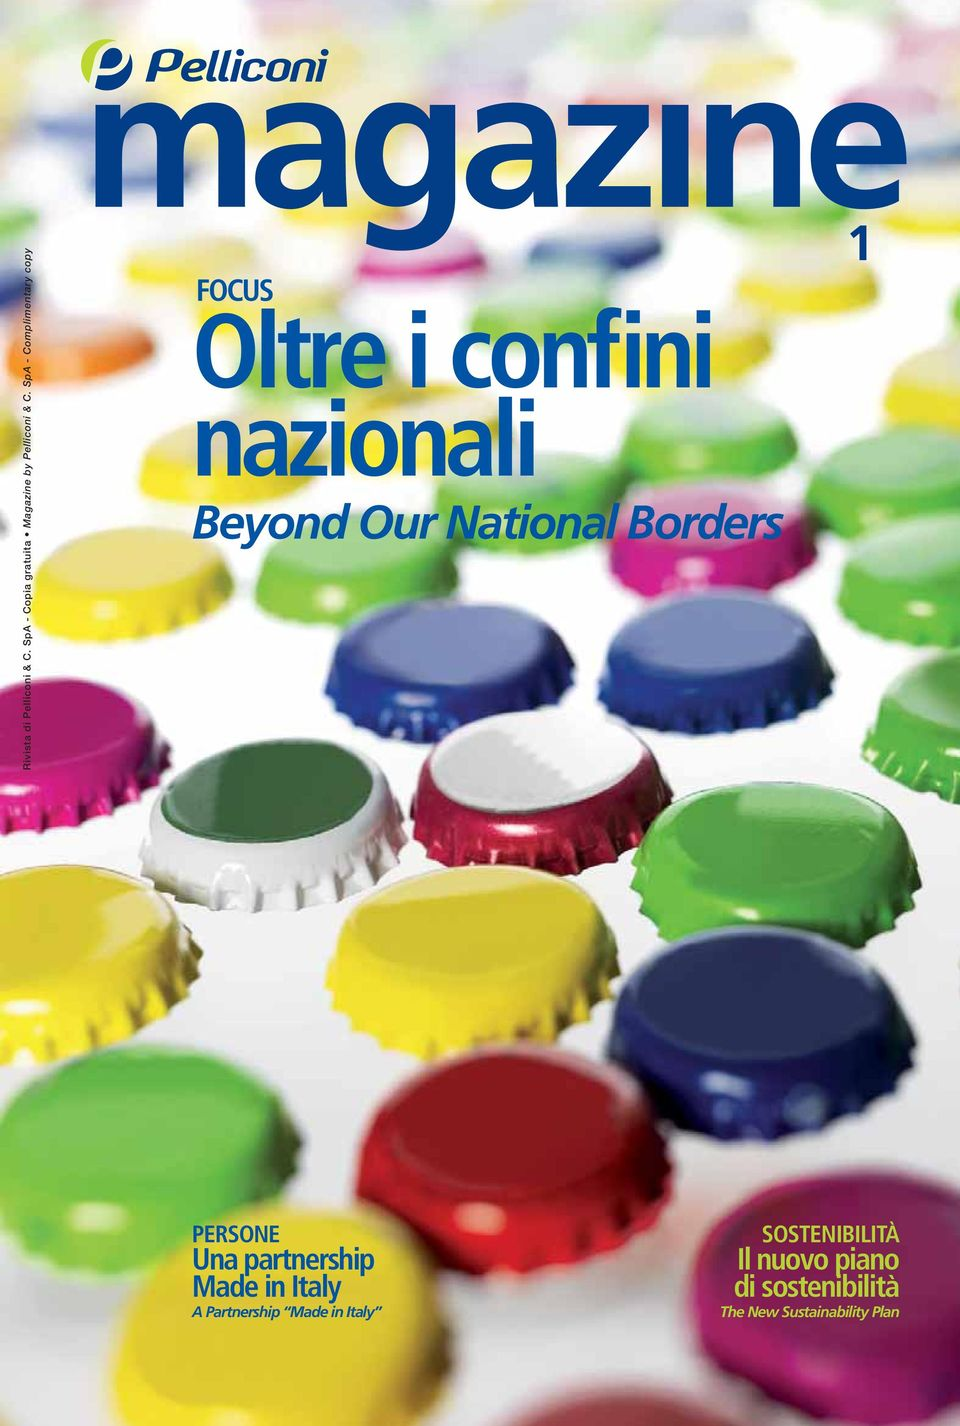 National Borders 1 PERSONE Una partnership Made in Italy A Partnership